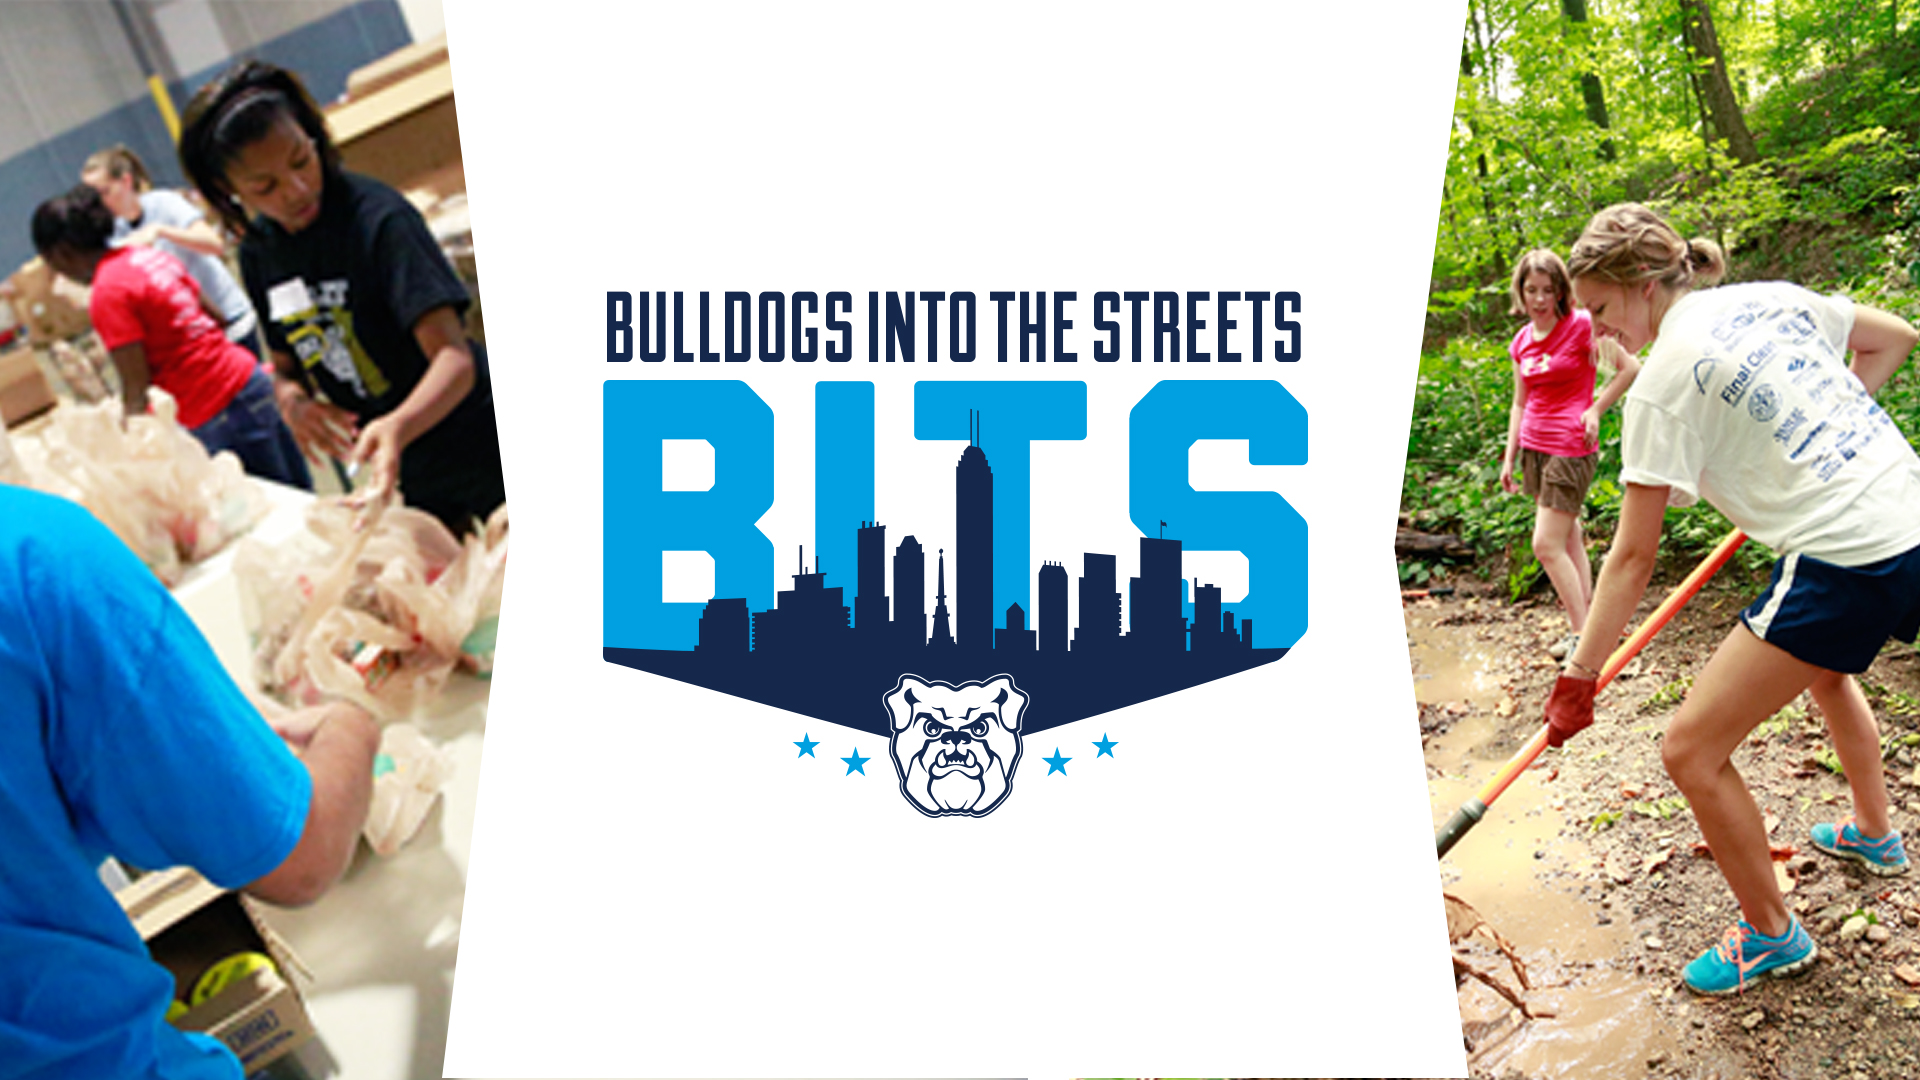 Boston Bulldogs Into The Streets (BITS)